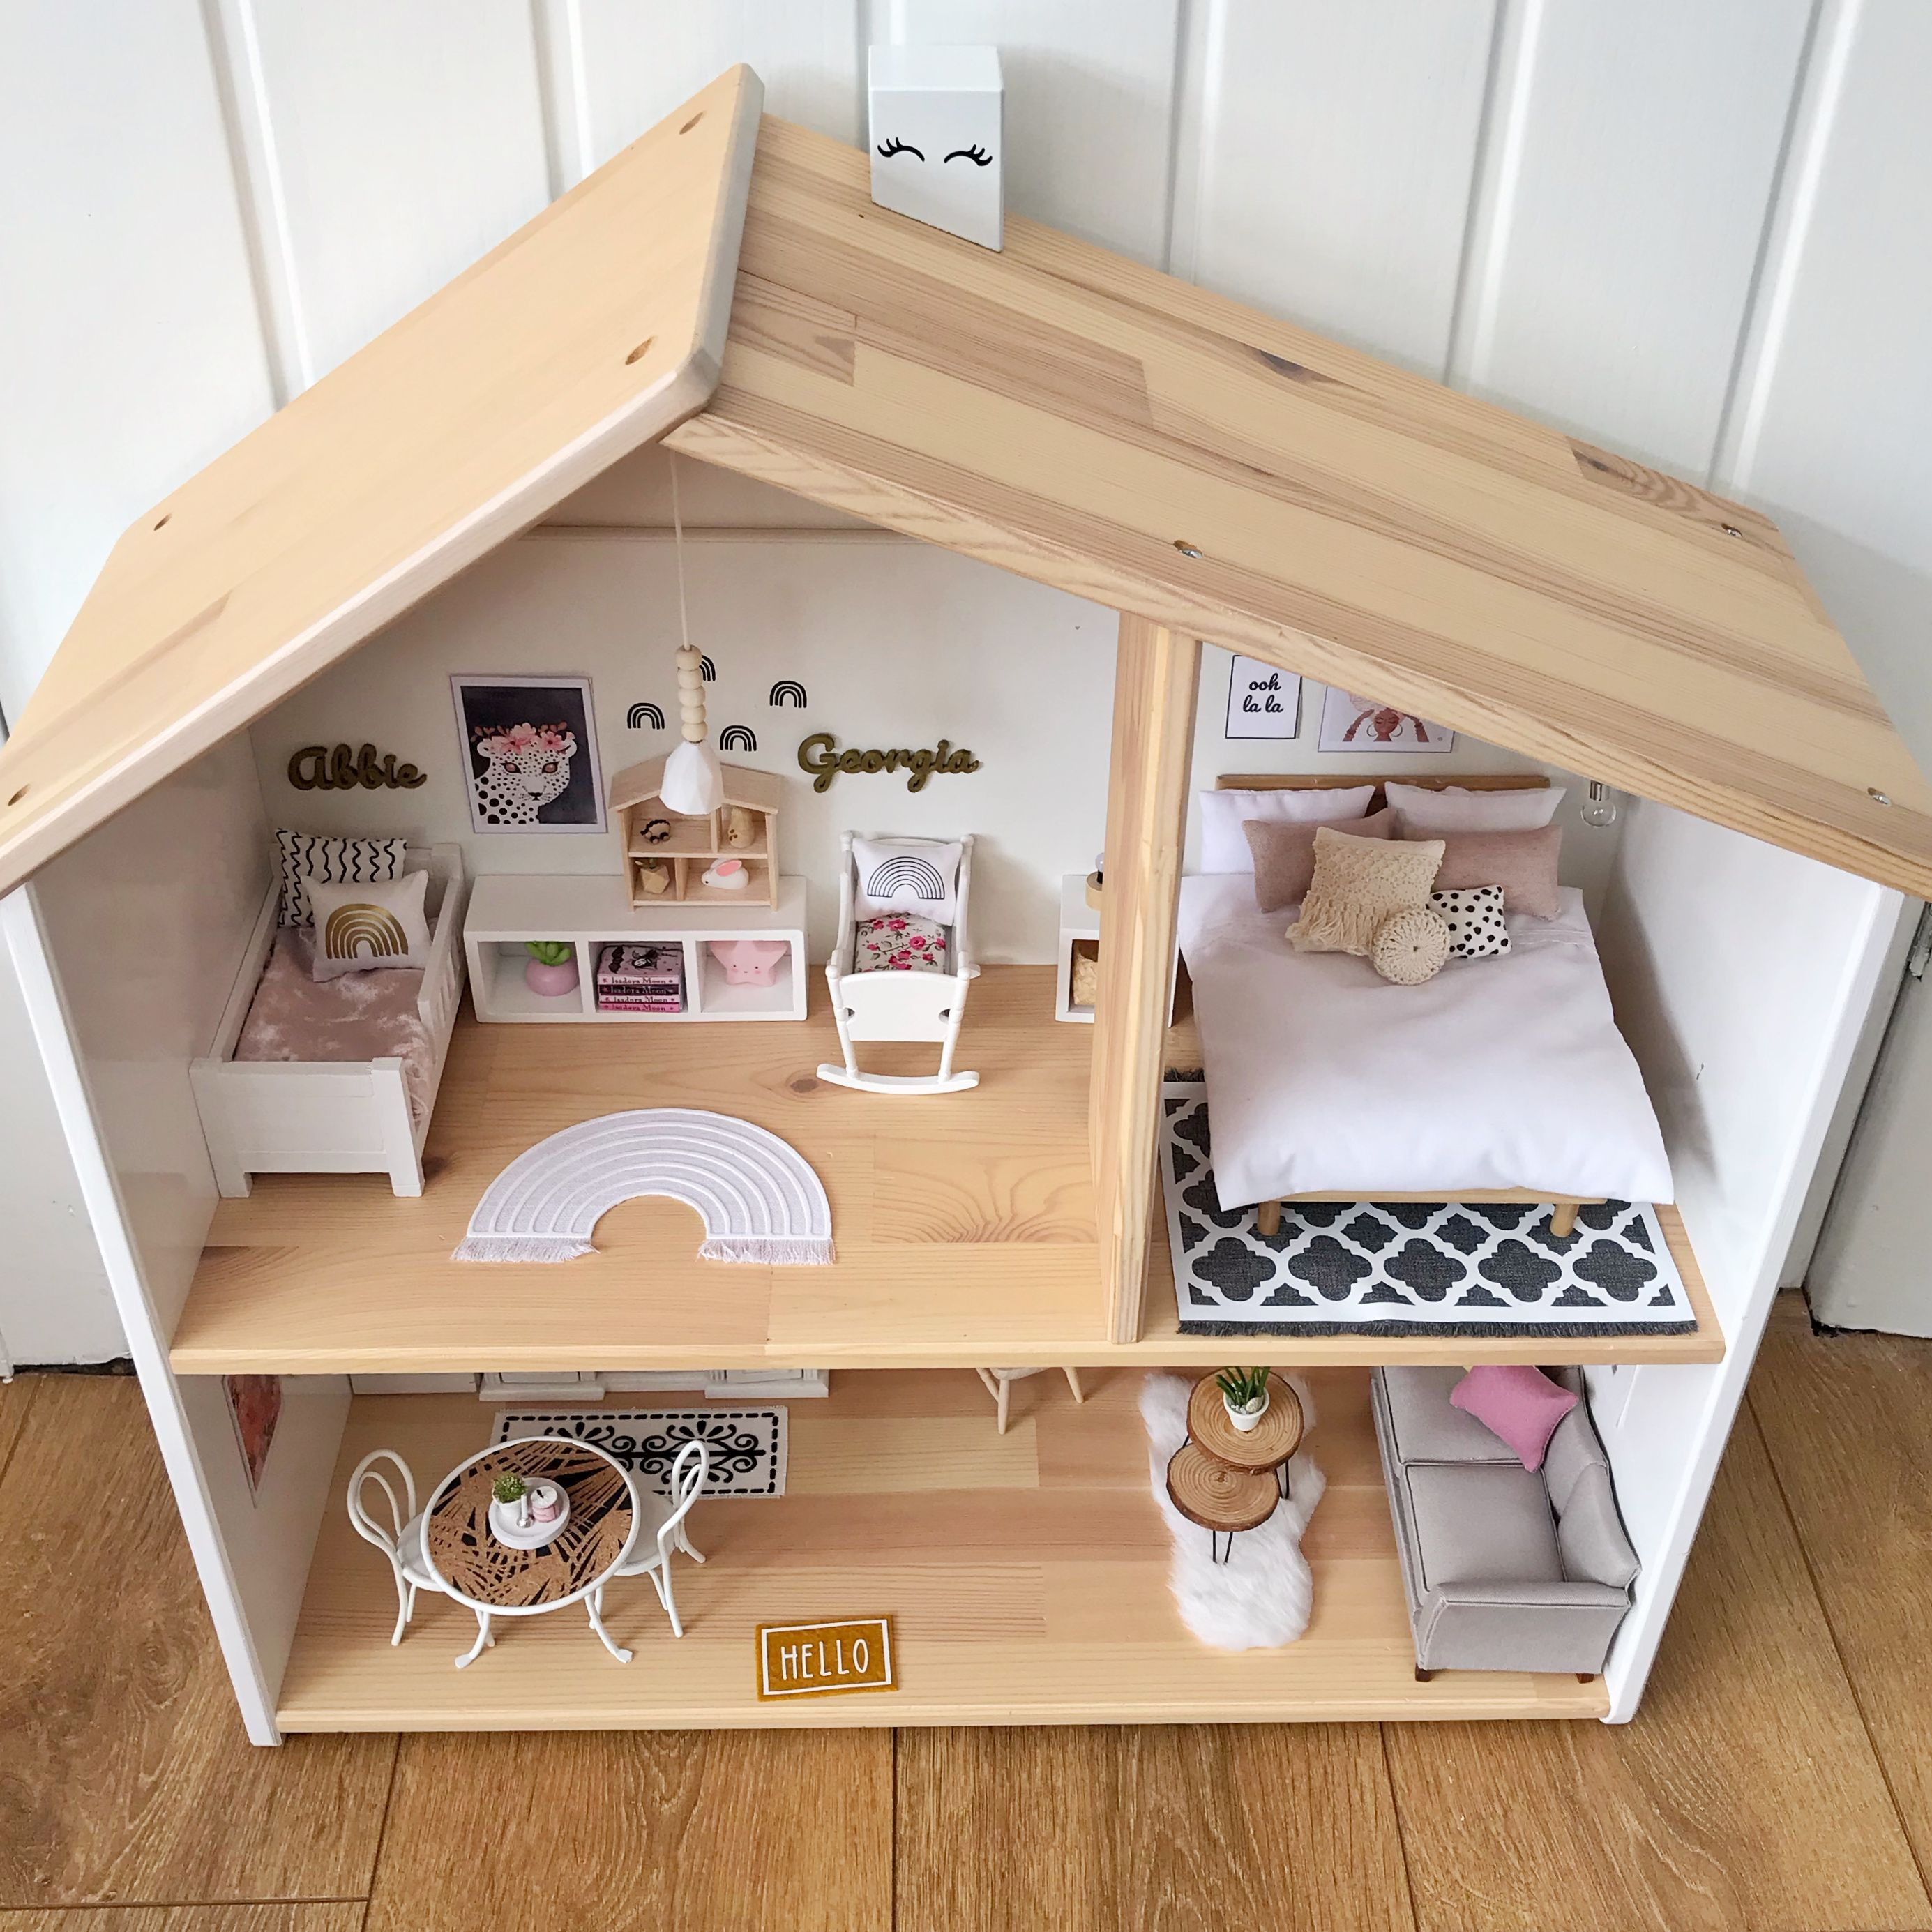 Modern dollhouse boho style - Ikea dollhouse renovation  #dollhousefurniture